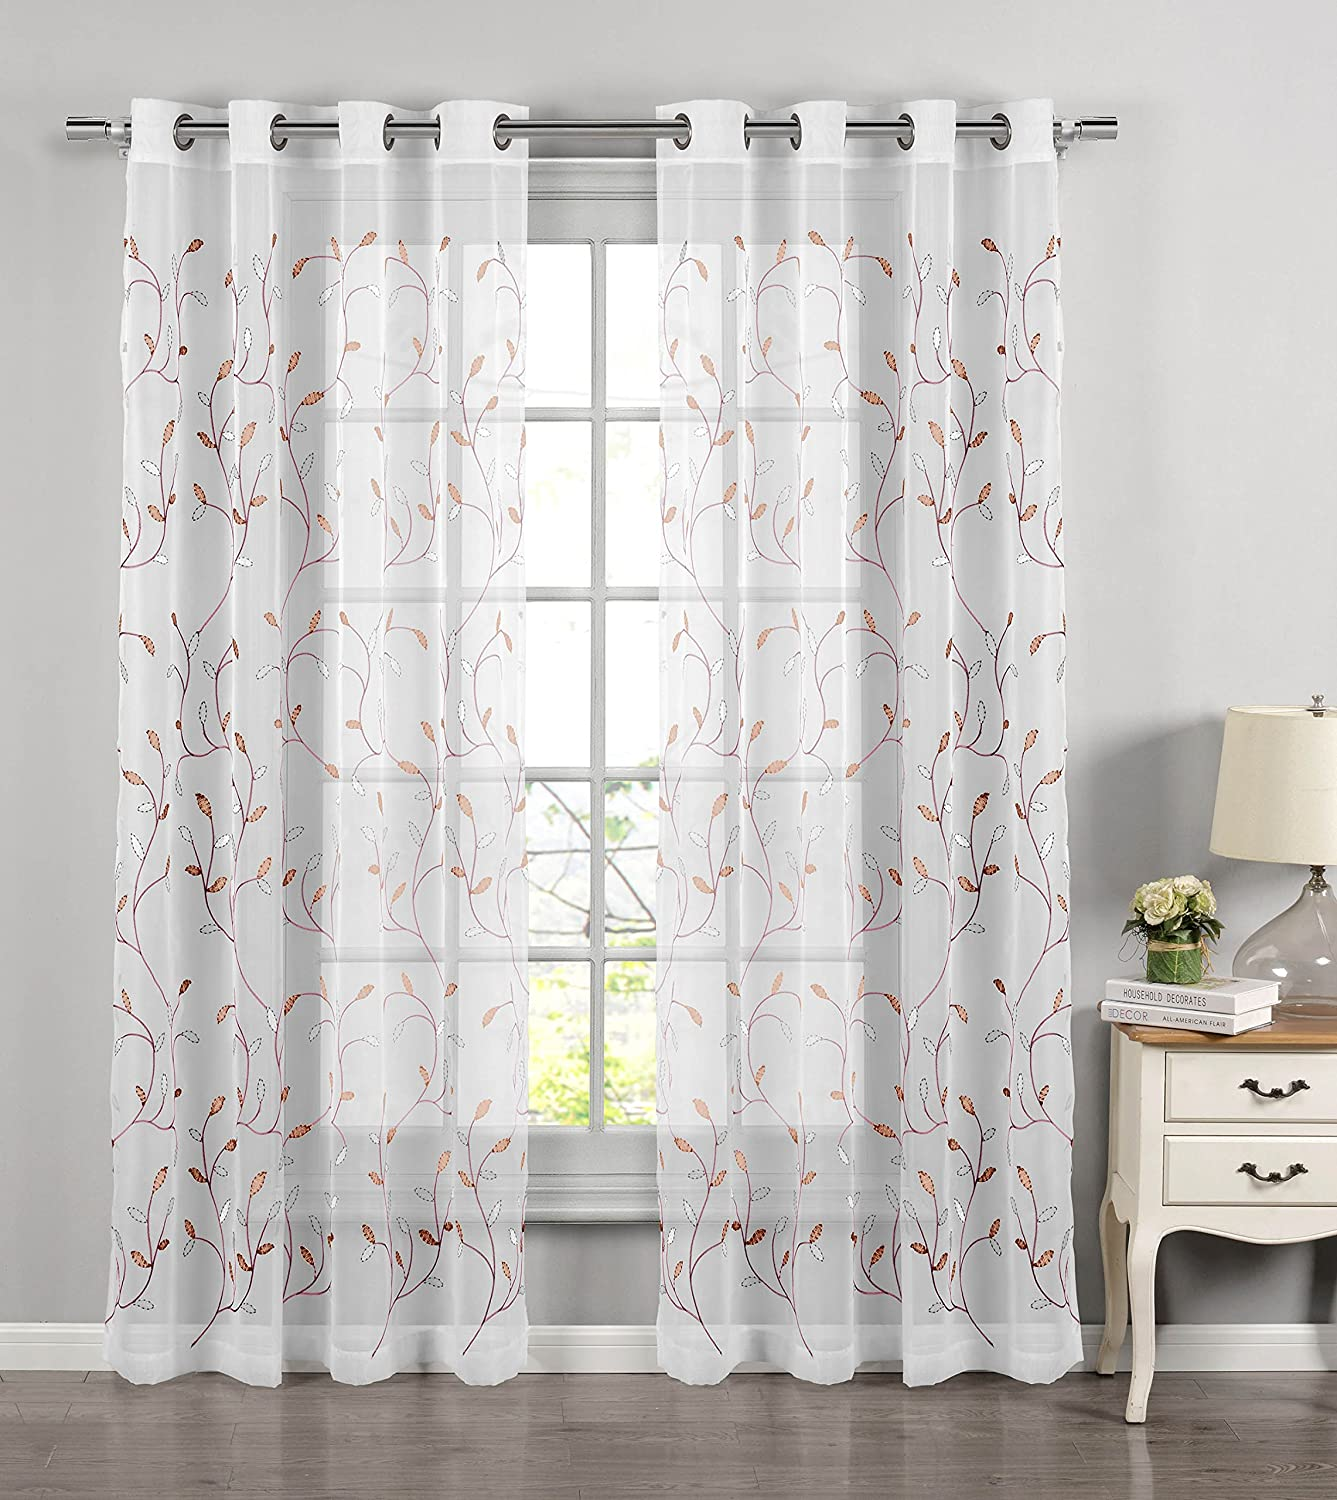 Window Elements Wavy Leaves Embroidered Sheer Extra Wide 54 x 84 in. Grommet Curtain Panel, Coral